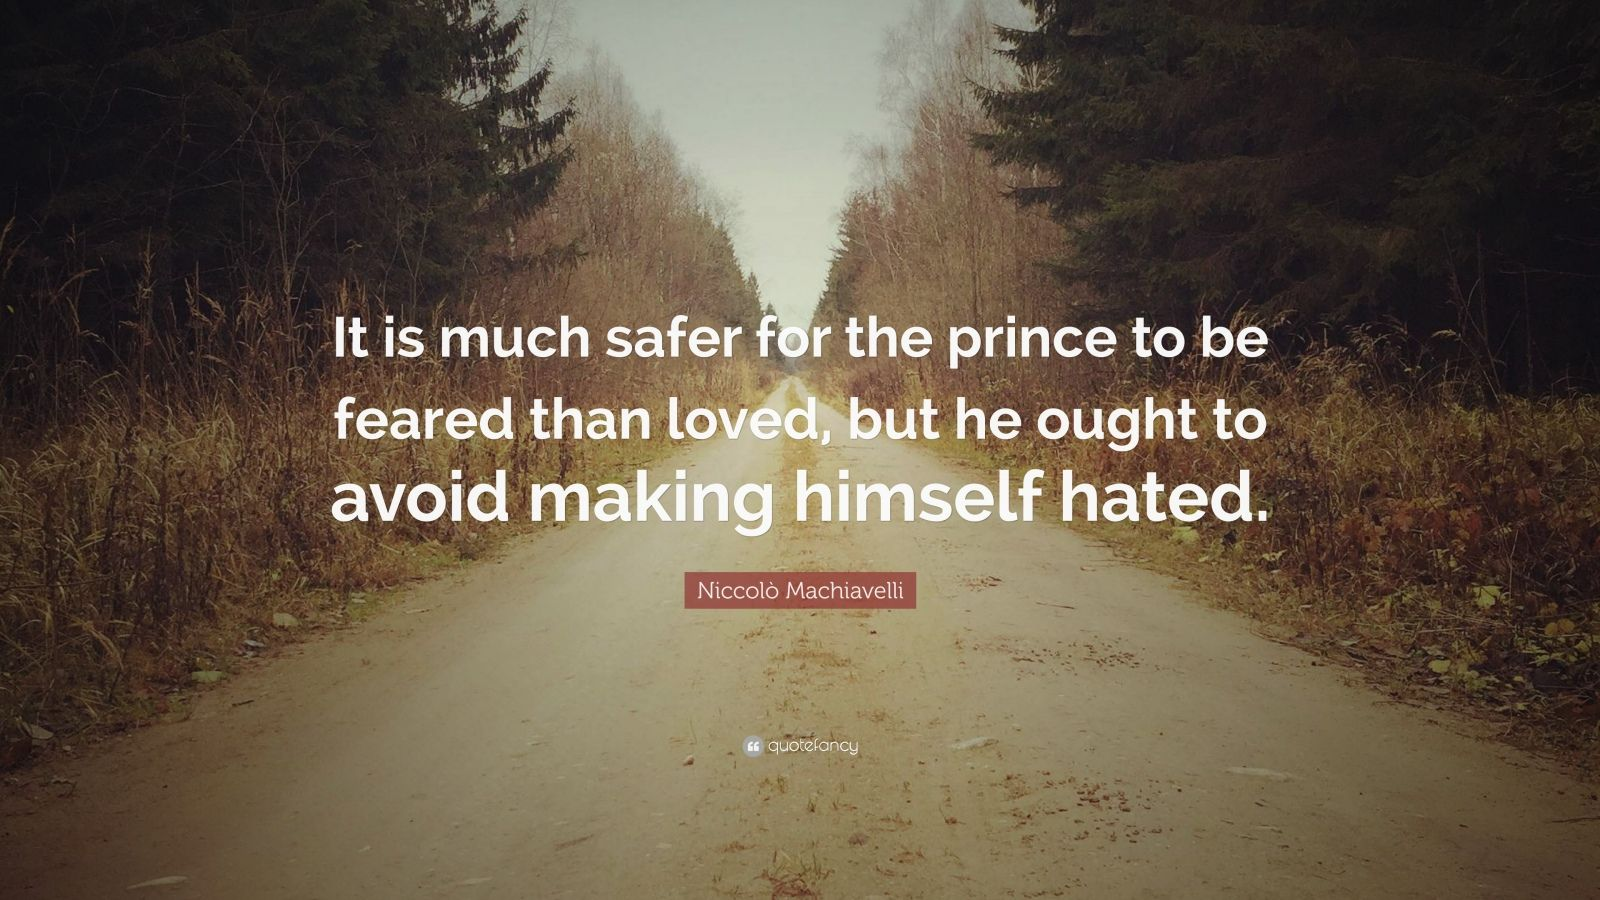 can a machiavellian prince be a I have to do a report on nicolo machiavelli's book the prince and i need examples of current day machiavellian rulers if you can, will you also explain why thanks.